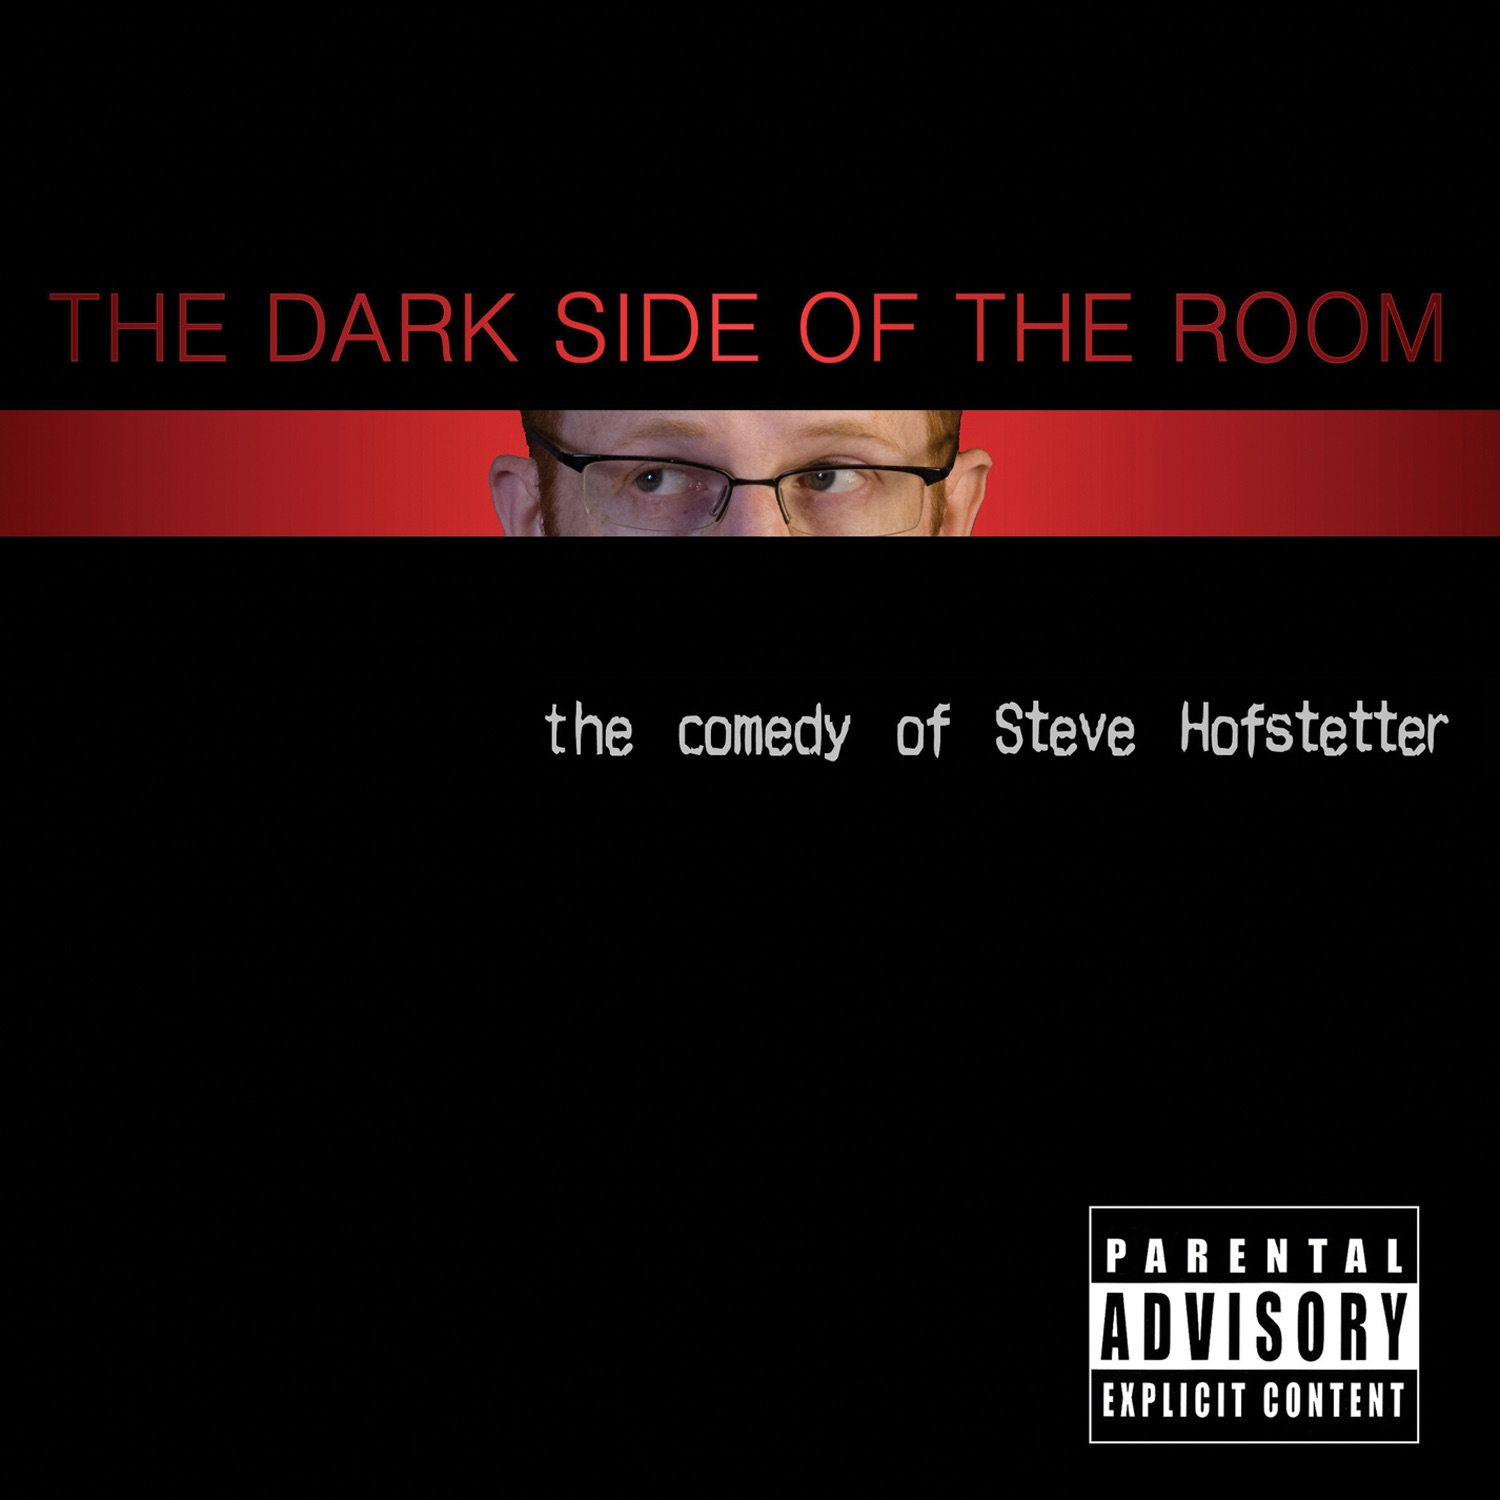 The Dark Side of the Room